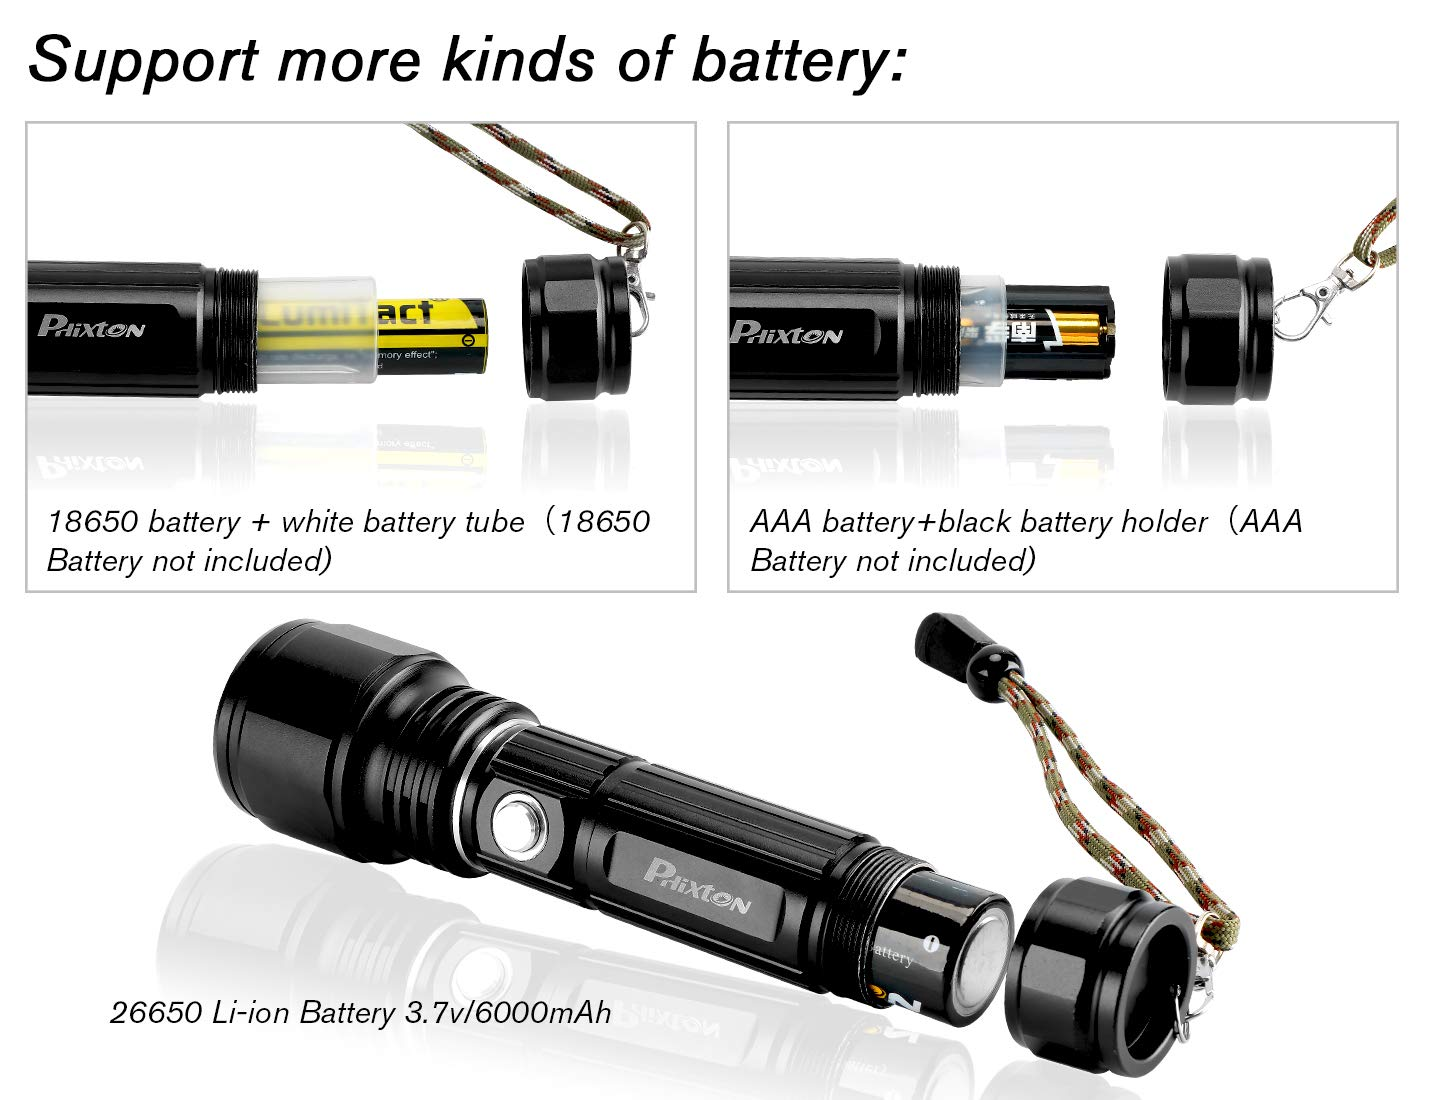 Rechargeable Tactical Flashlight Super Bright L2 LED High Lumens Flashlights Zoomable Camping Light 6000mAh 26650 Battery USB Cable Gift Box Included For Hiking Emergency Everyday Useage